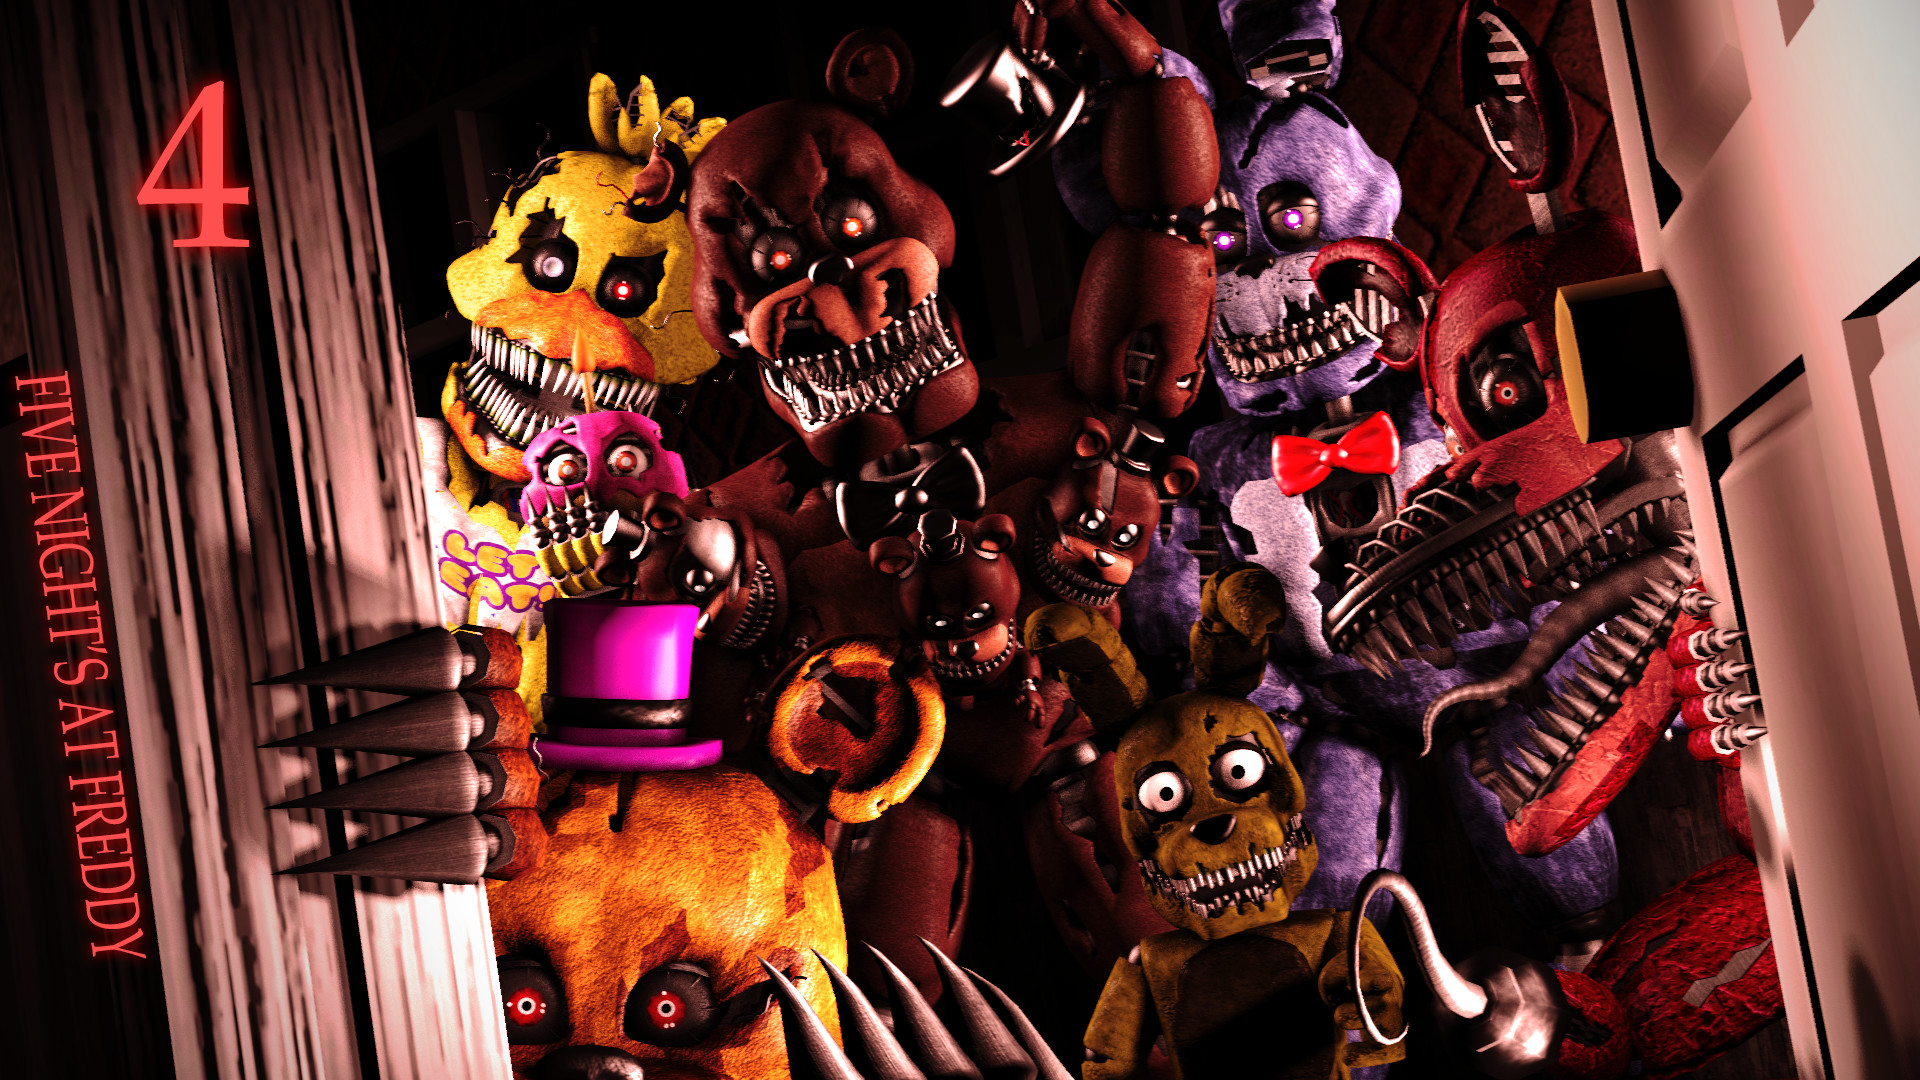 Five Nights at Freddys 4 2015 PC Game Free Download – Free Games Download